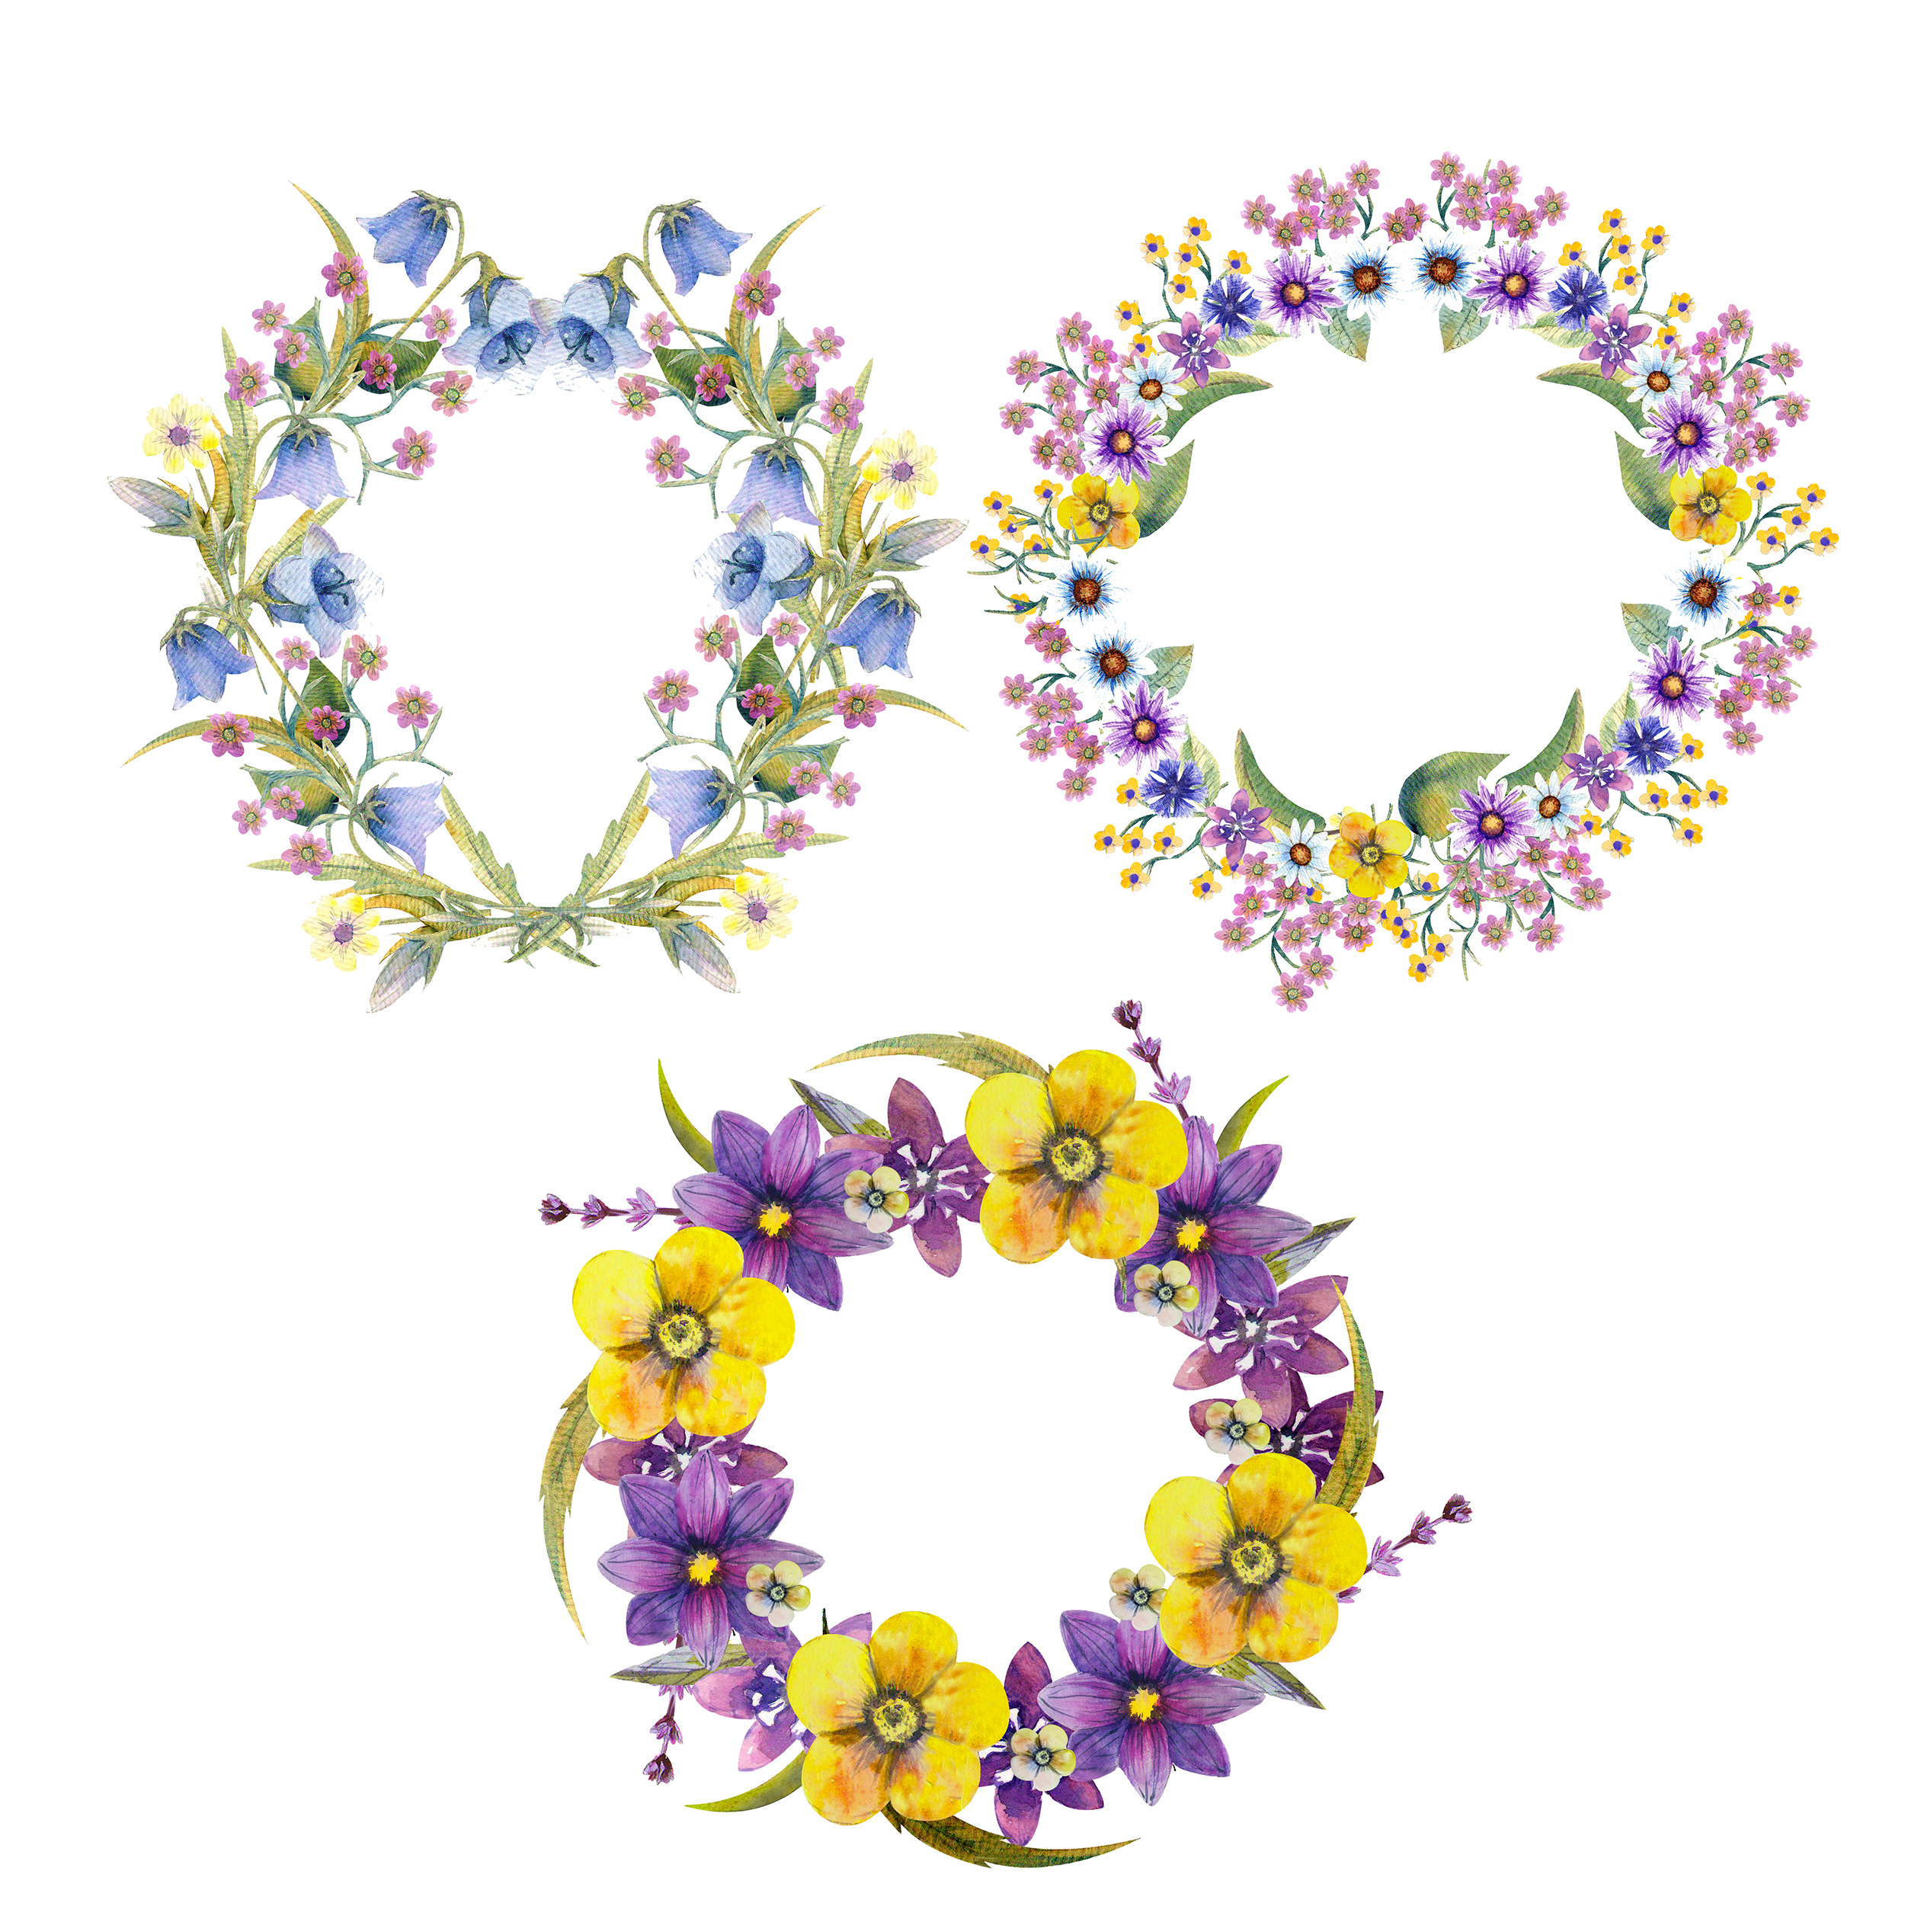 Wild flowers watercolor example image 9